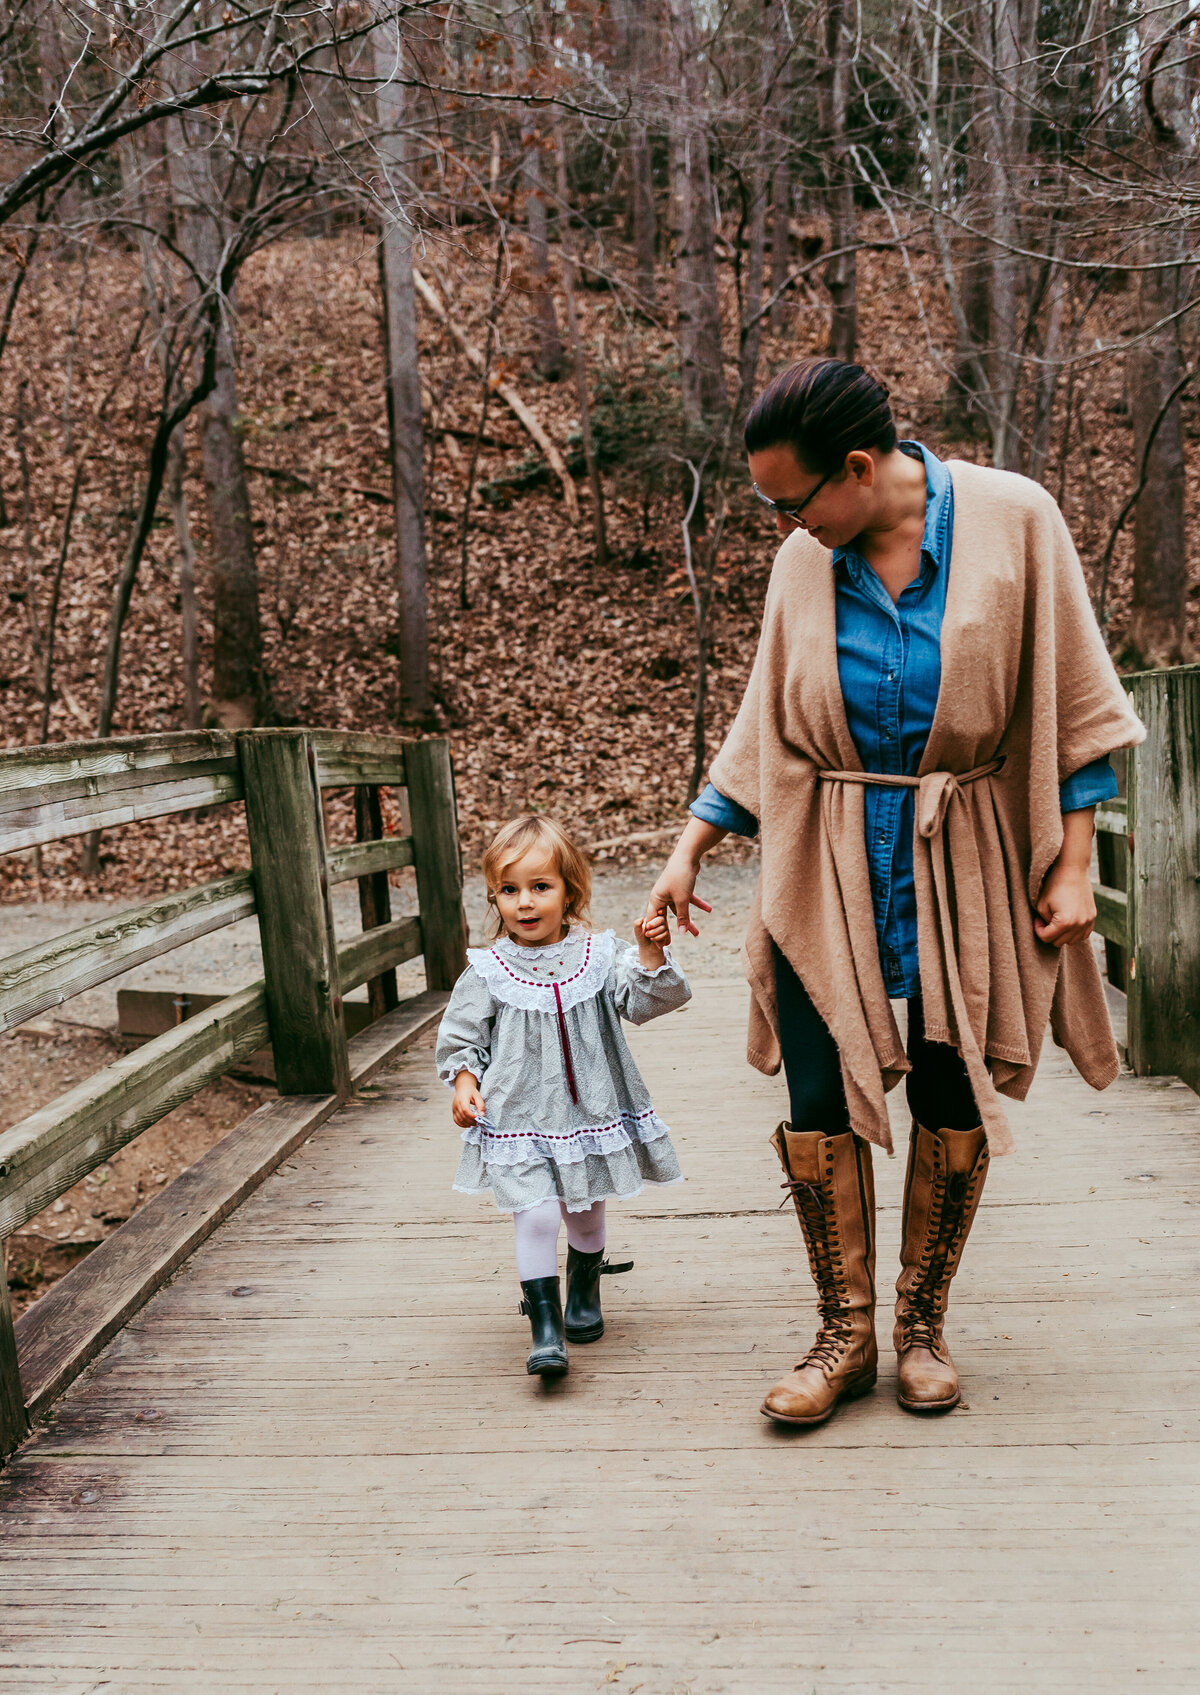 Mother and daughter walking across a wooden bridge holding hands